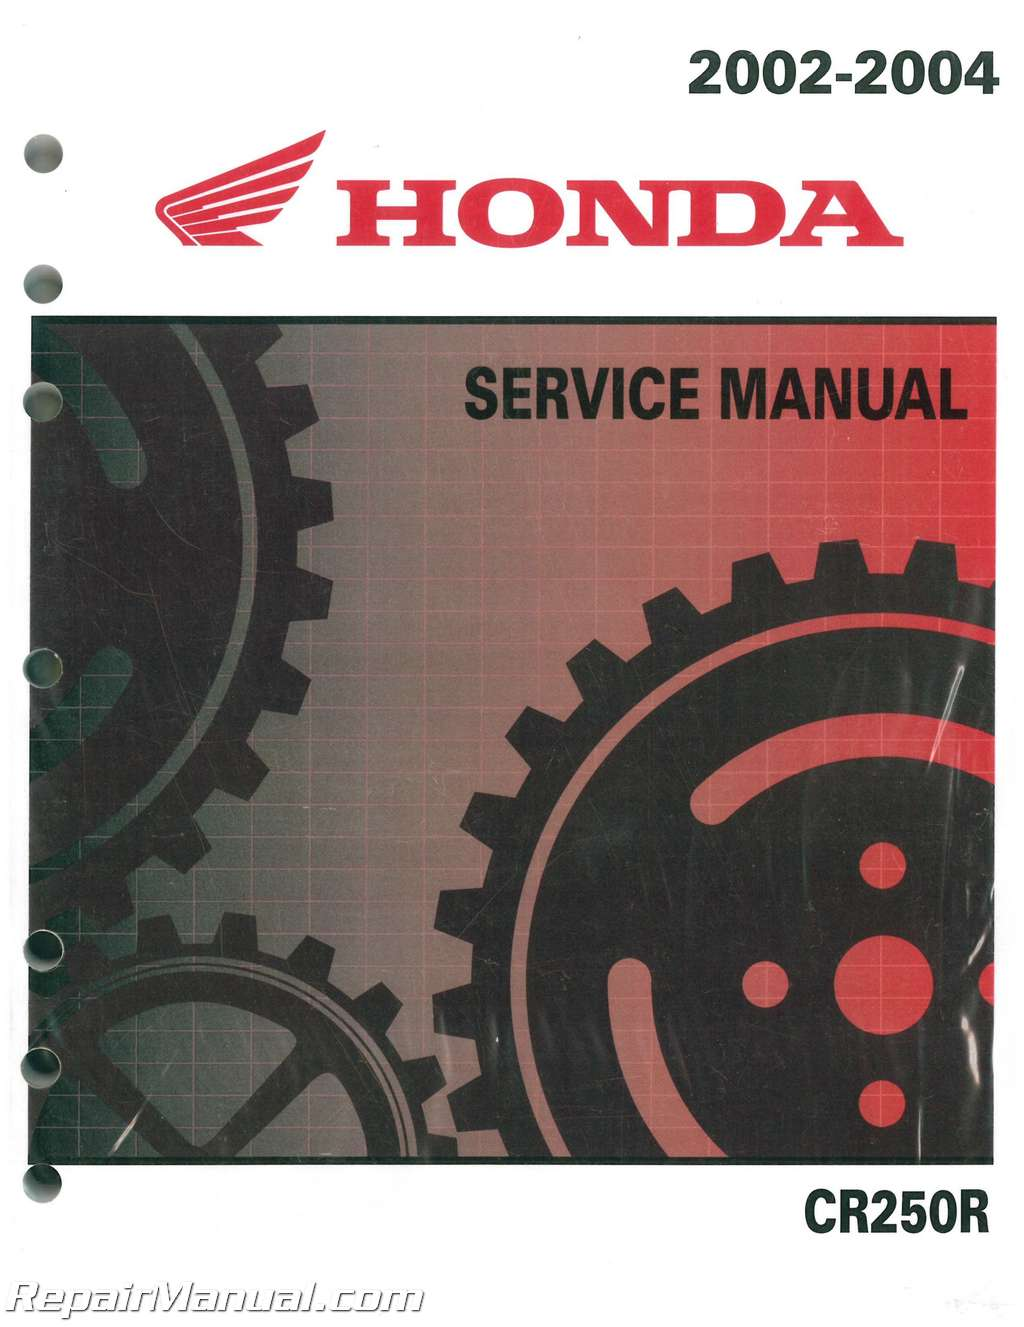 2002 2004 honda cr250r two stroke motorcycle service manual rh repairmanual com honda cr250 workshop manual honda cr250 repair manual pdf